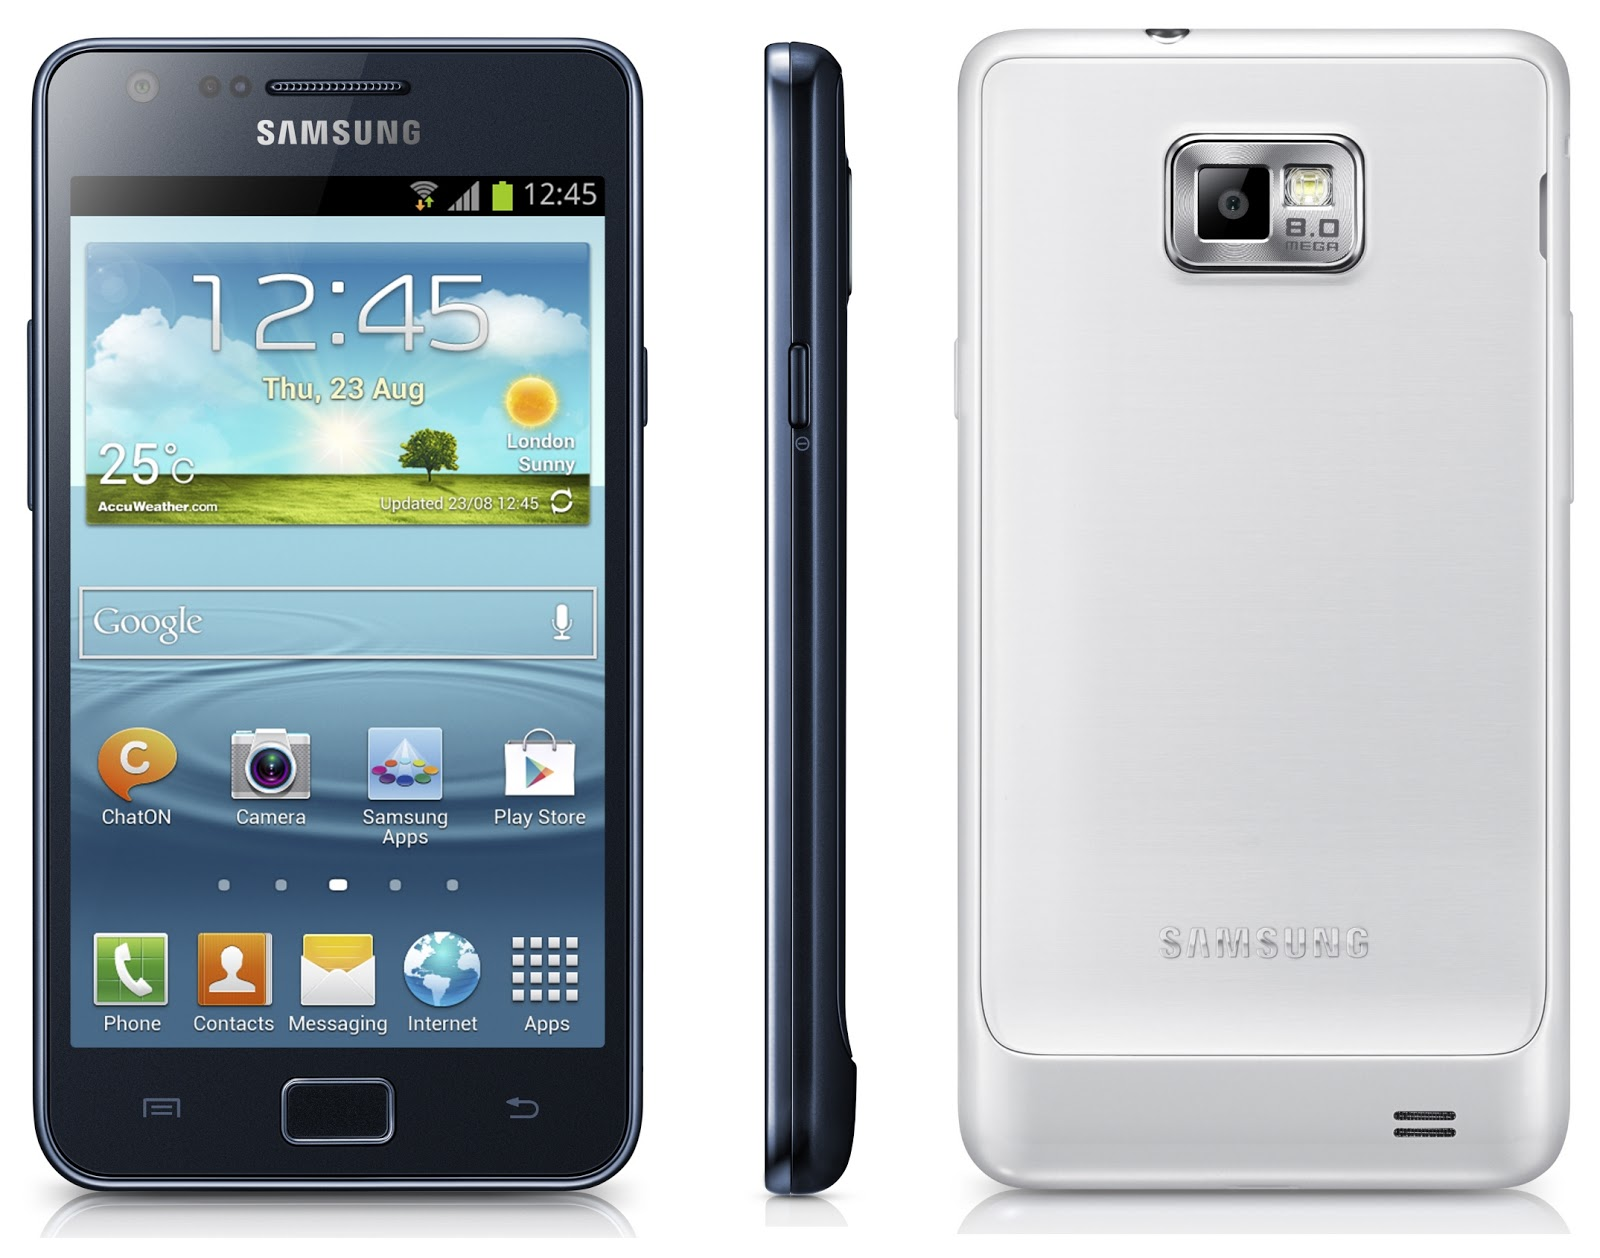 Samsung Galaxy S1 Comparison Between Samsung Galaxy S Series Phones Like